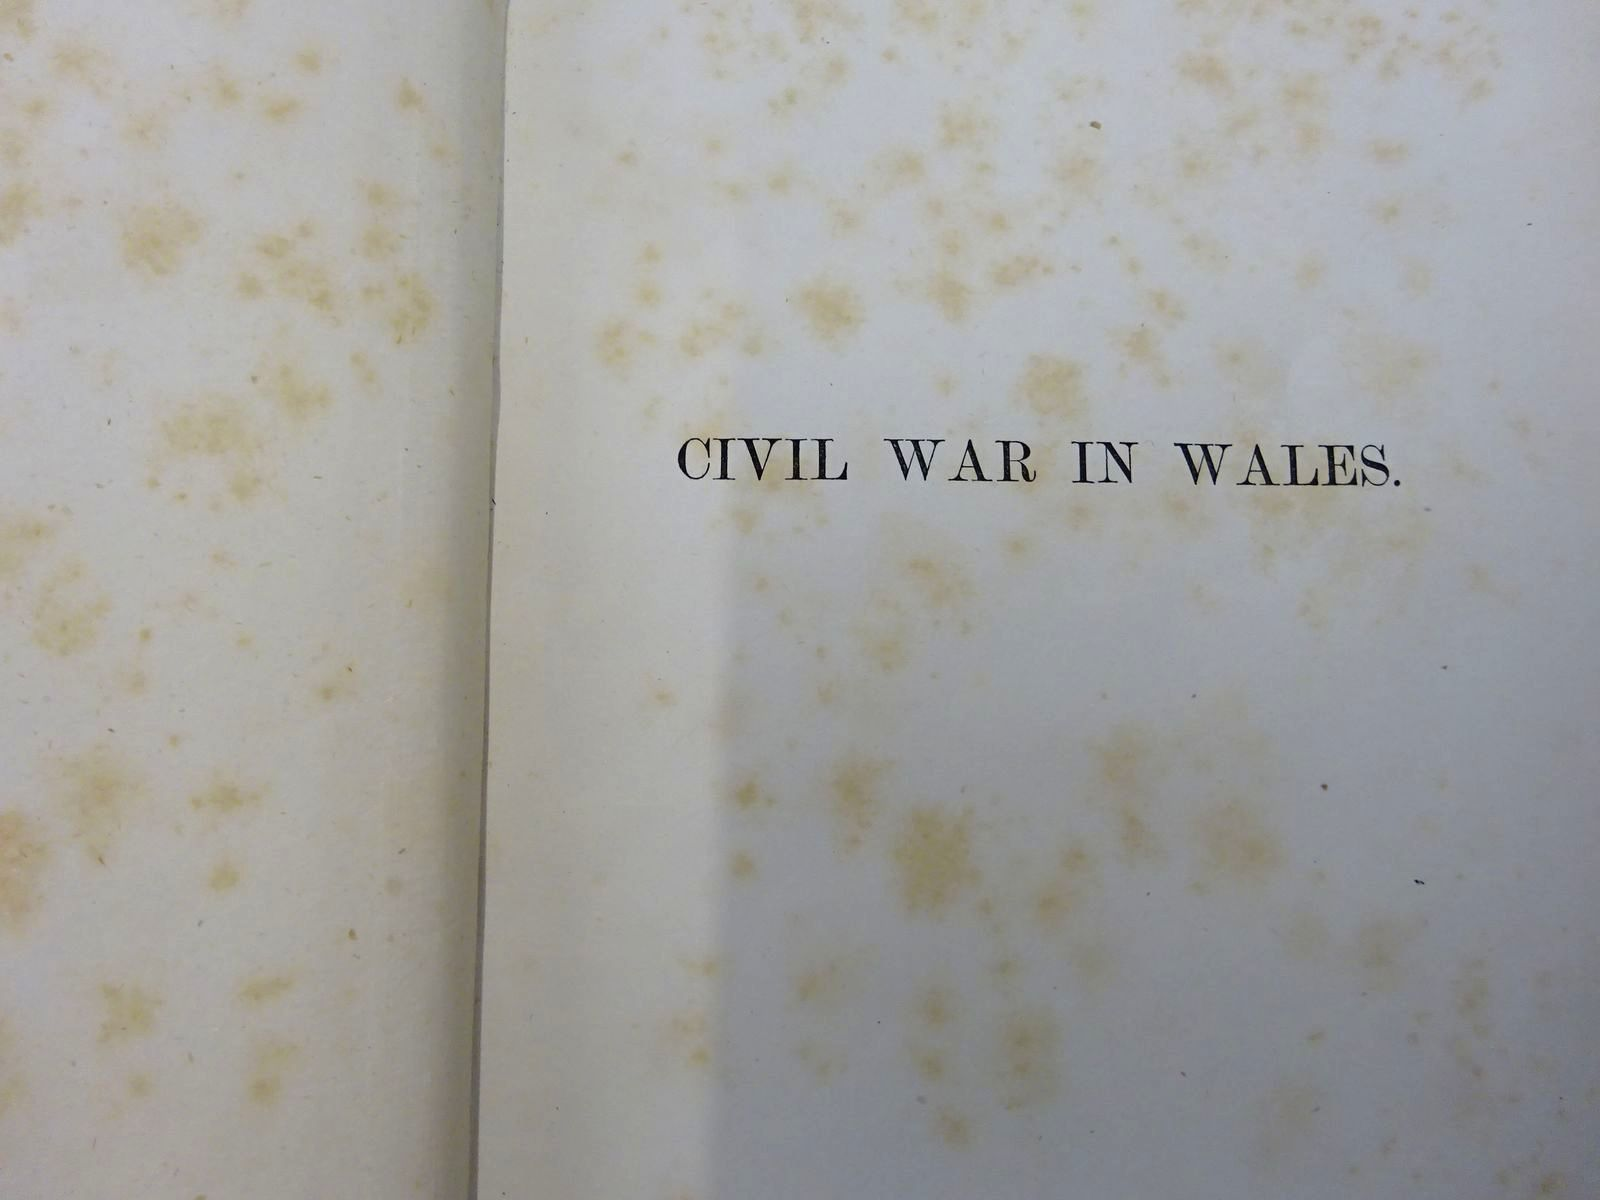 Photo of MEMOIRS OF THE CIVIL WAR IN WALES AND THE MARCHES 1642-1649 (2 VOLUMES) written by Phillips, John Roland published by Longmans, Green & Co. (STOCK CODE: 2127590)  for sale by Stella & Rose's Books